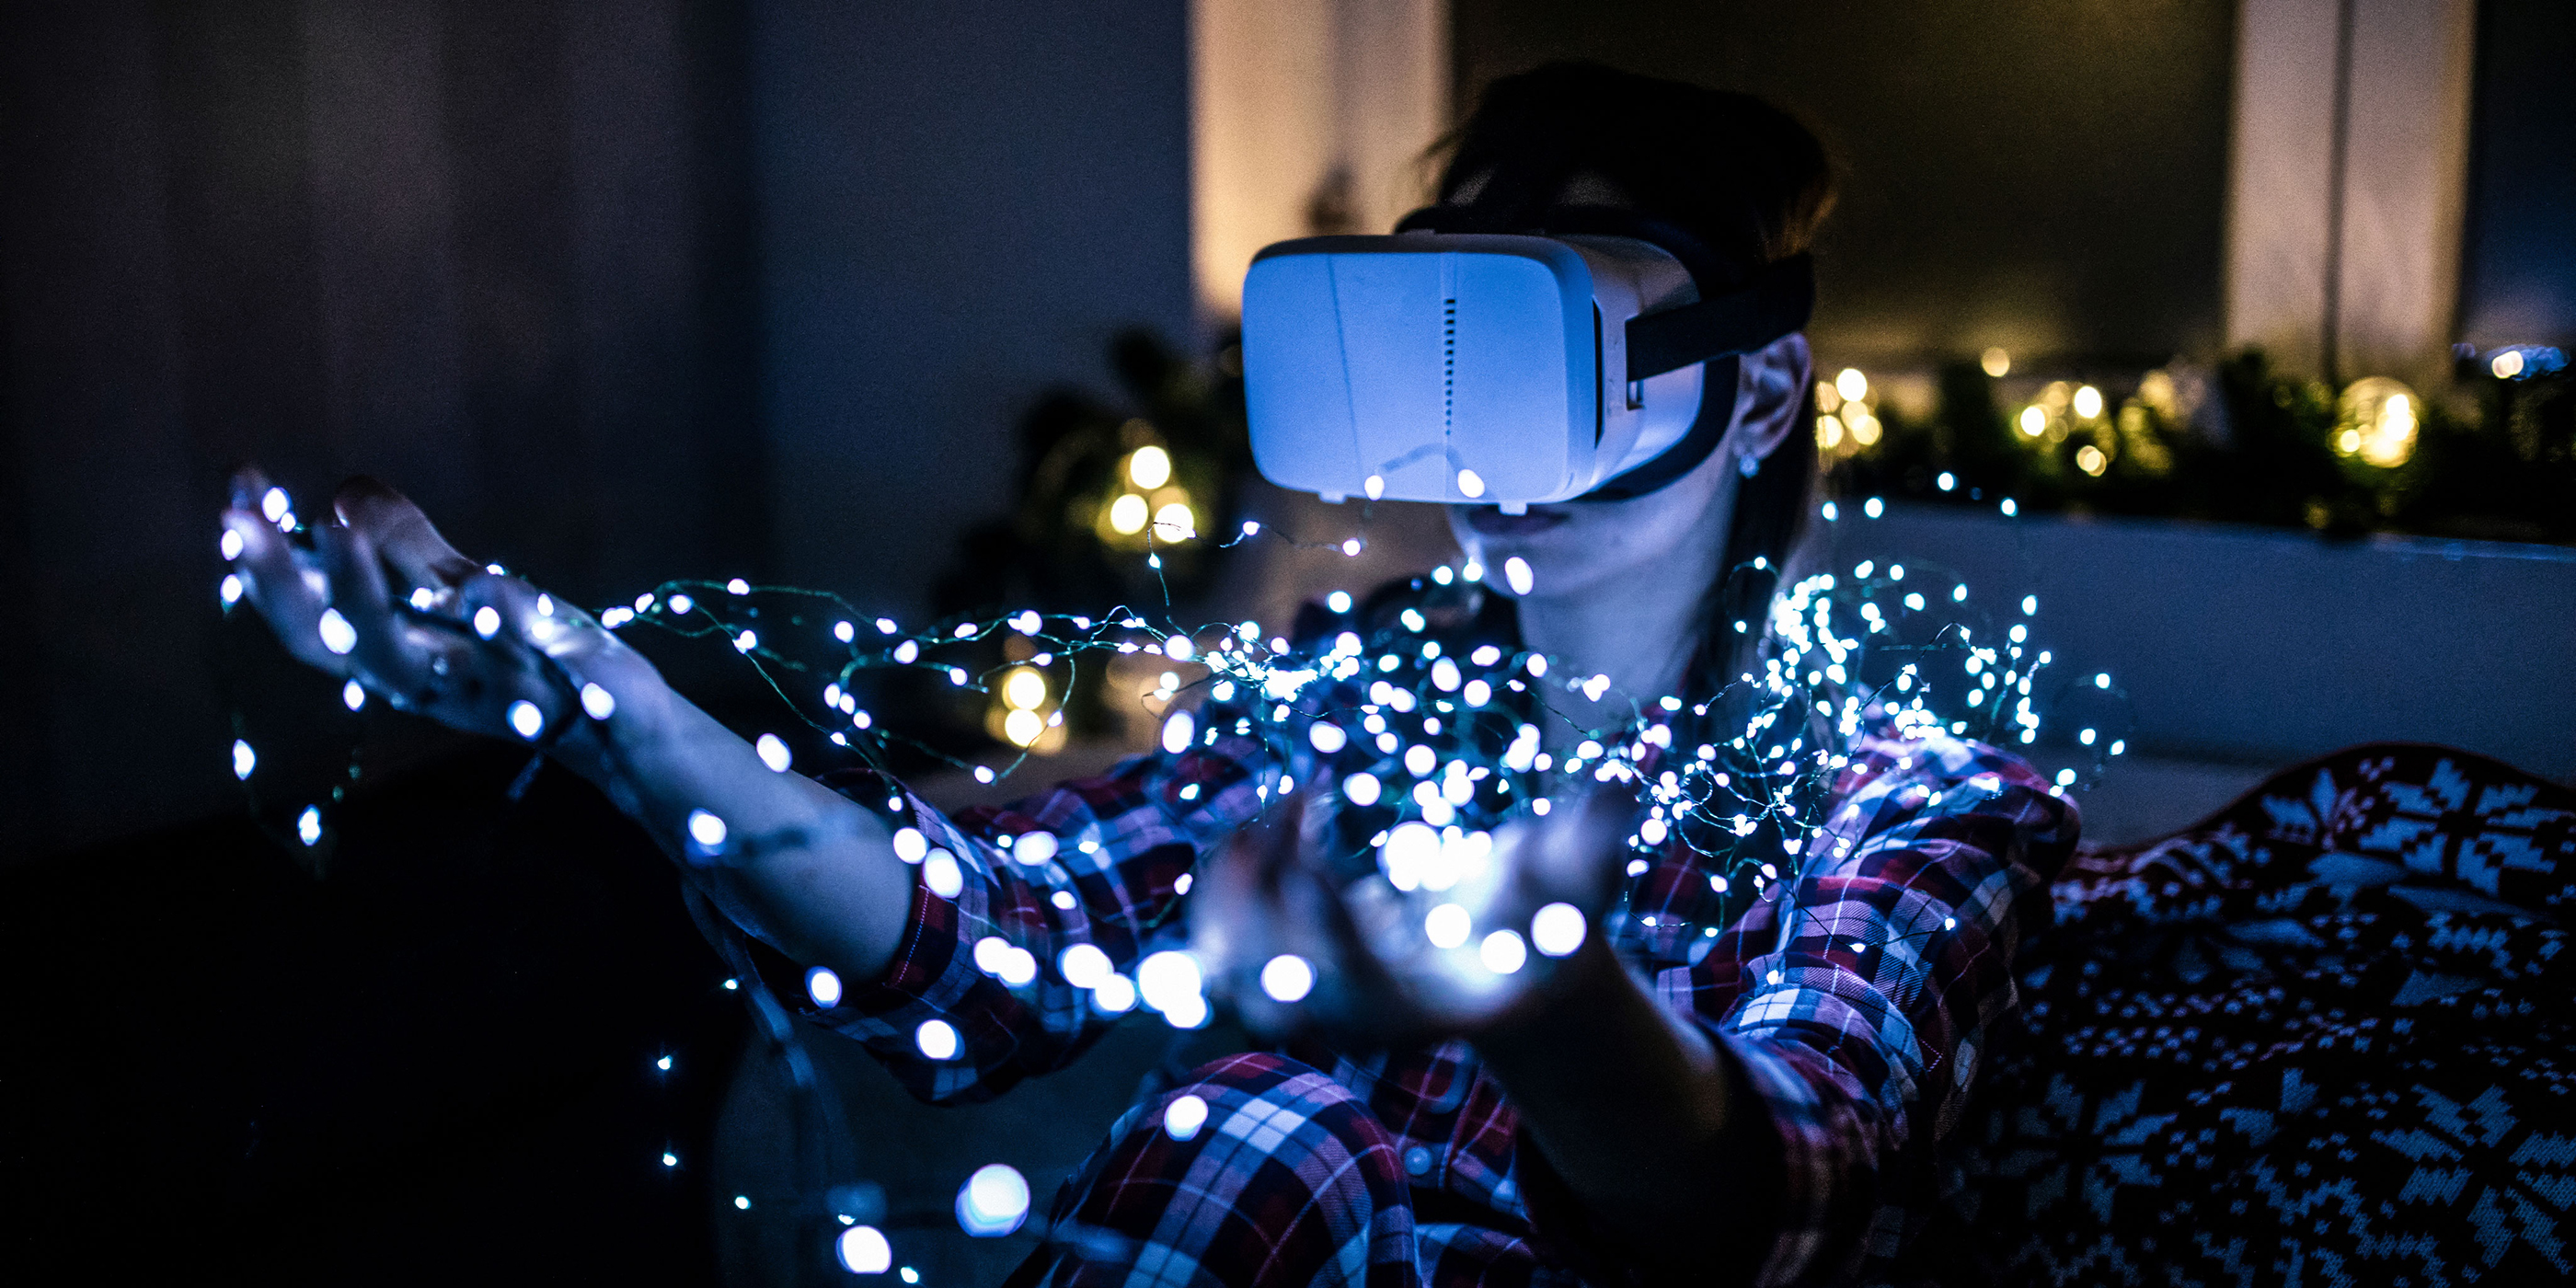 Sony To Reveal New Virtual Reality Tech At GDC | Flickr